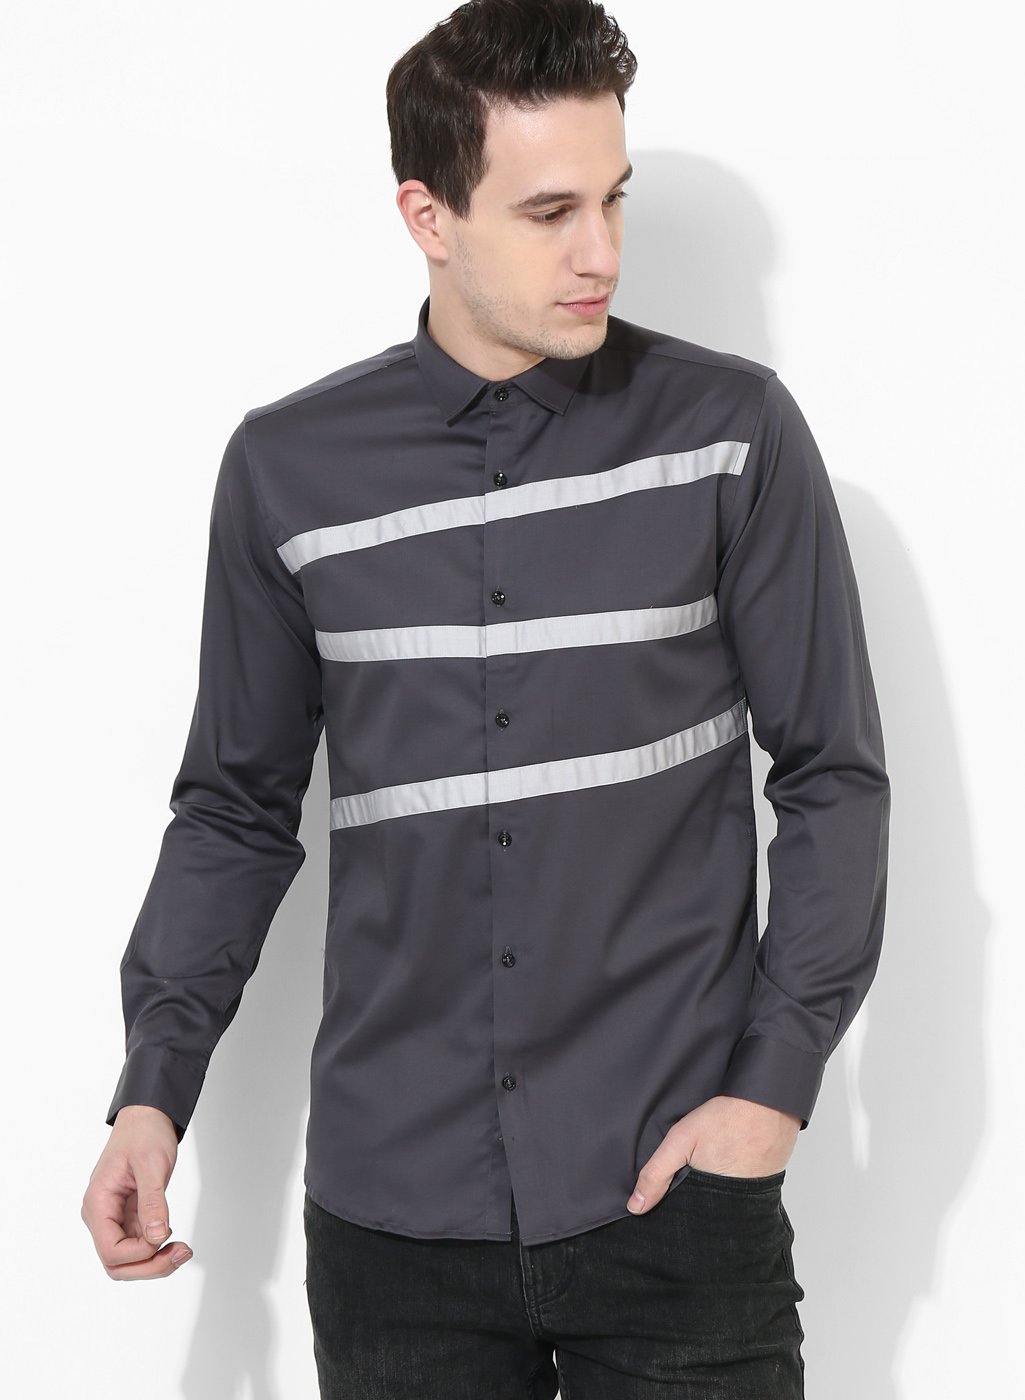 Panel Grey Three Stripes shirt